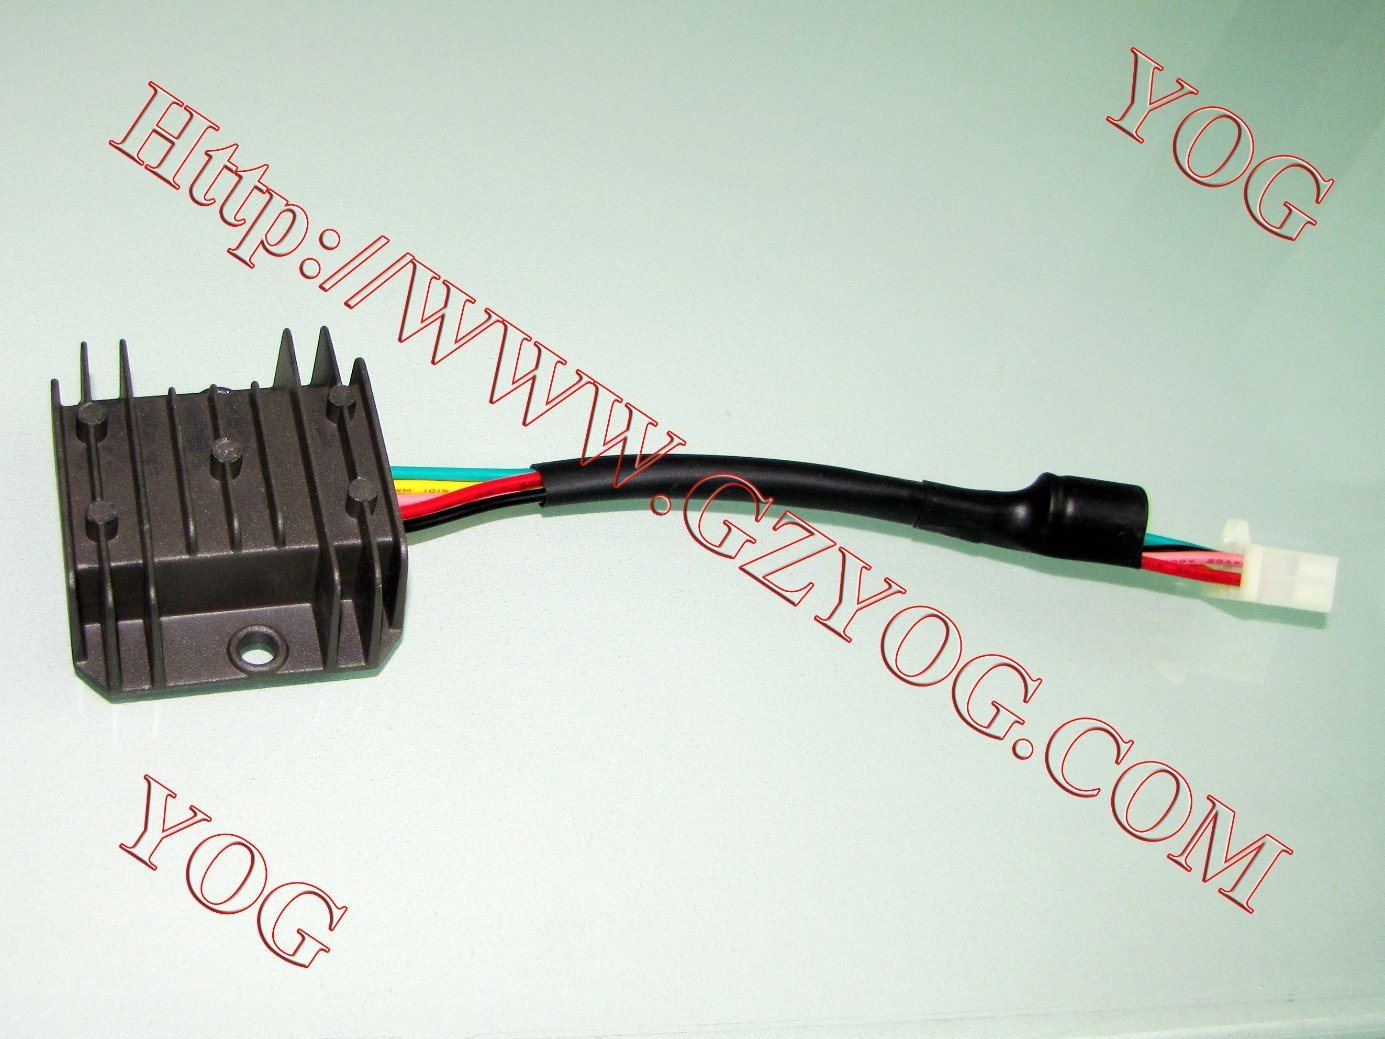 China Yog Motorcycle Accessories Regulador Auto Spare Parts Wiring Supplies Rectifier Assy Regulator For Fxd125